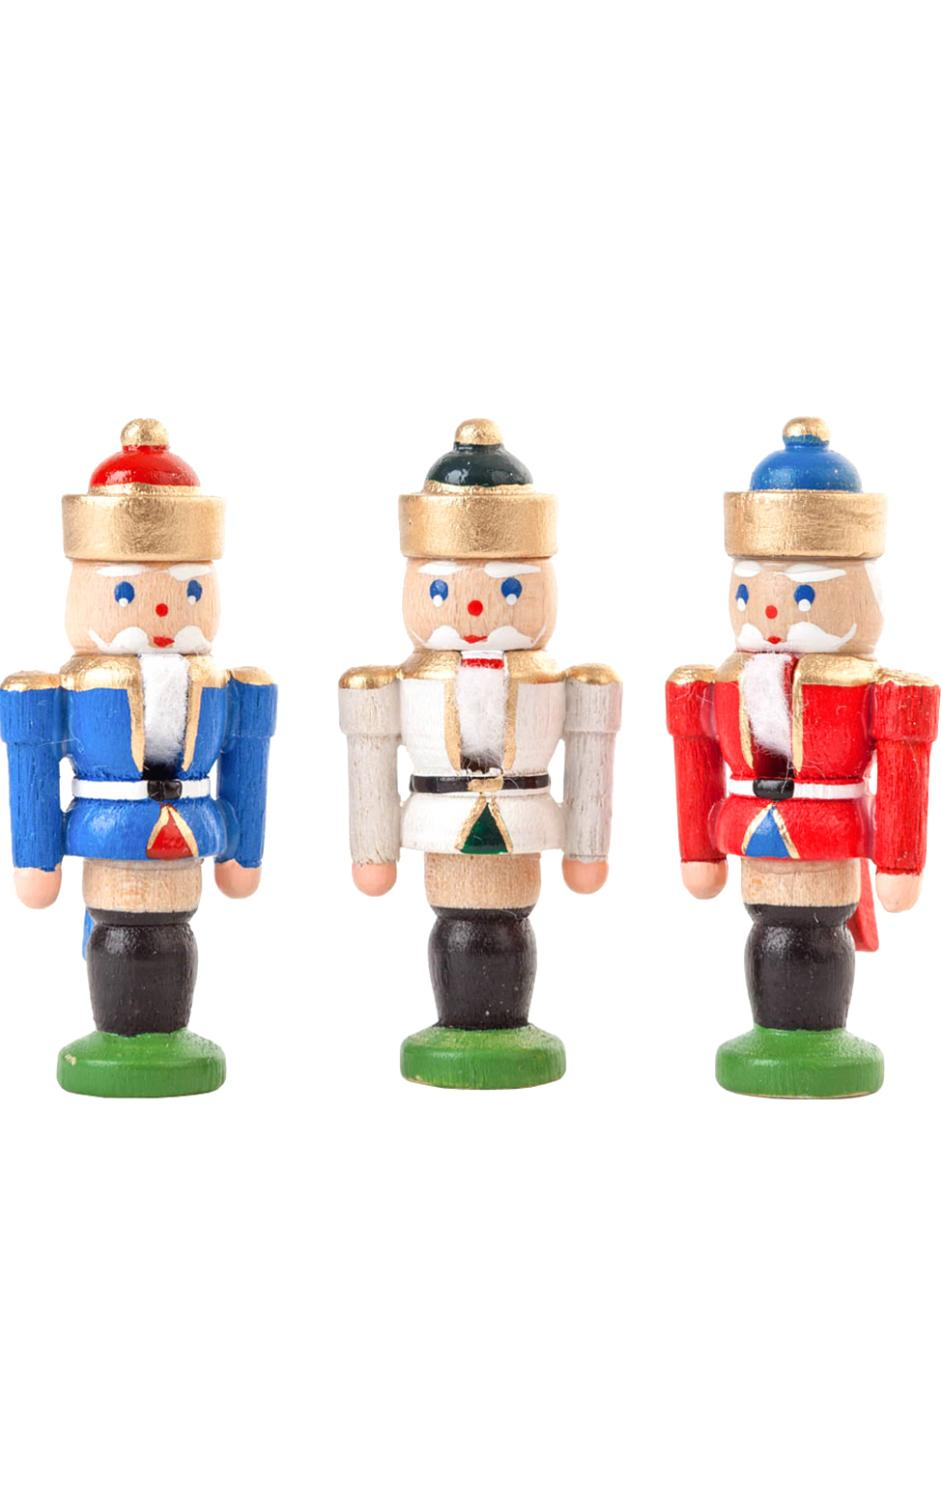 074-114 - Dregeno Ornaments - Set of 3 Kings - 2